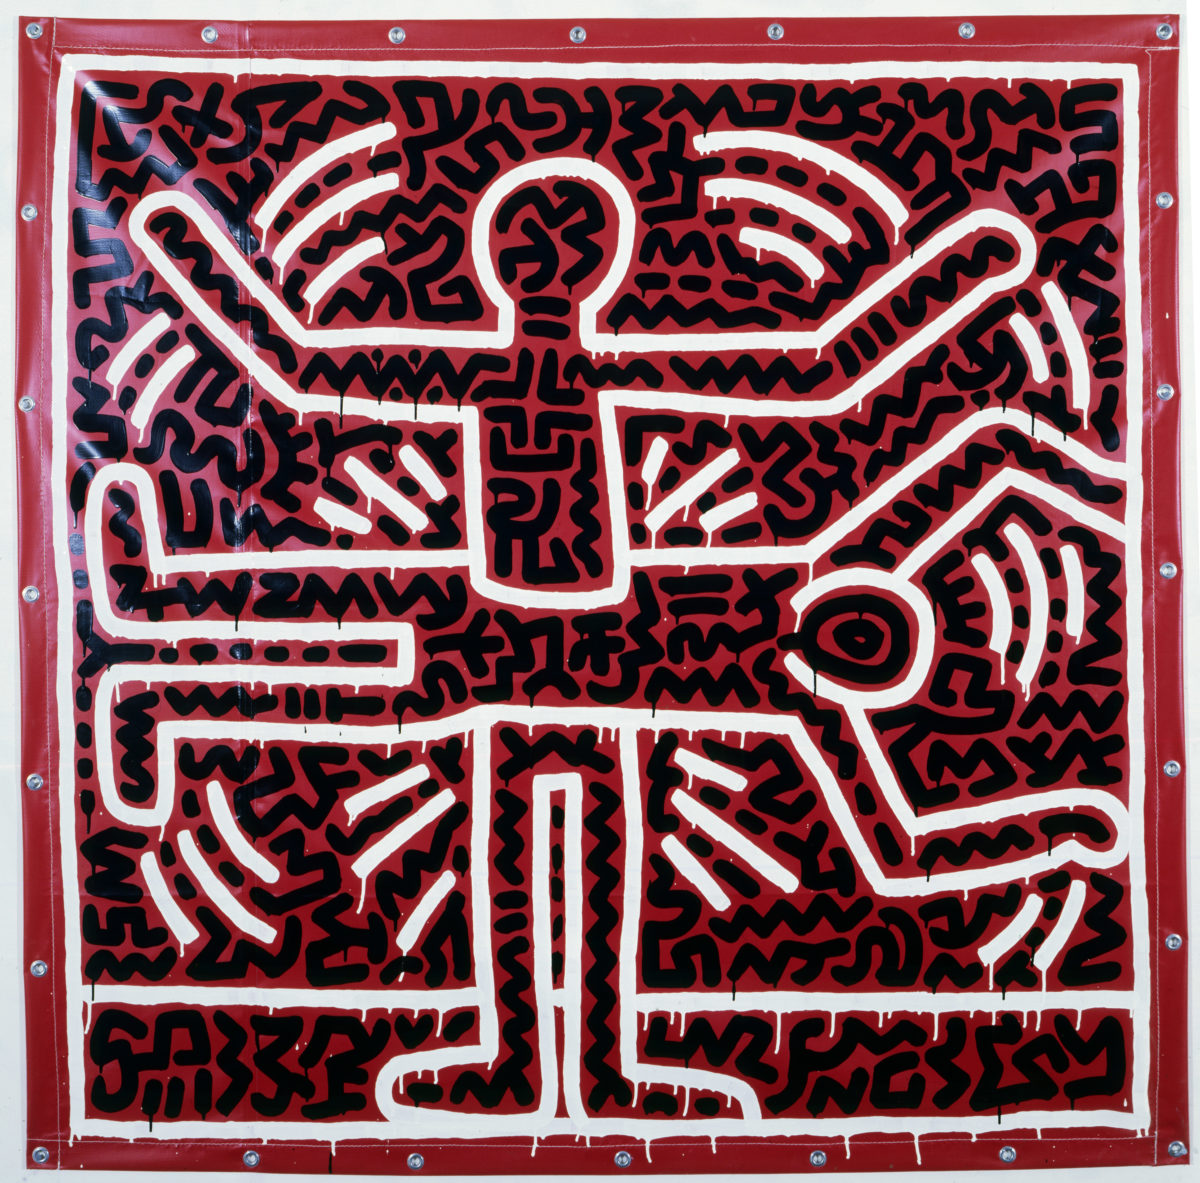 Keith Haring, Untitled 1983 [X74582]